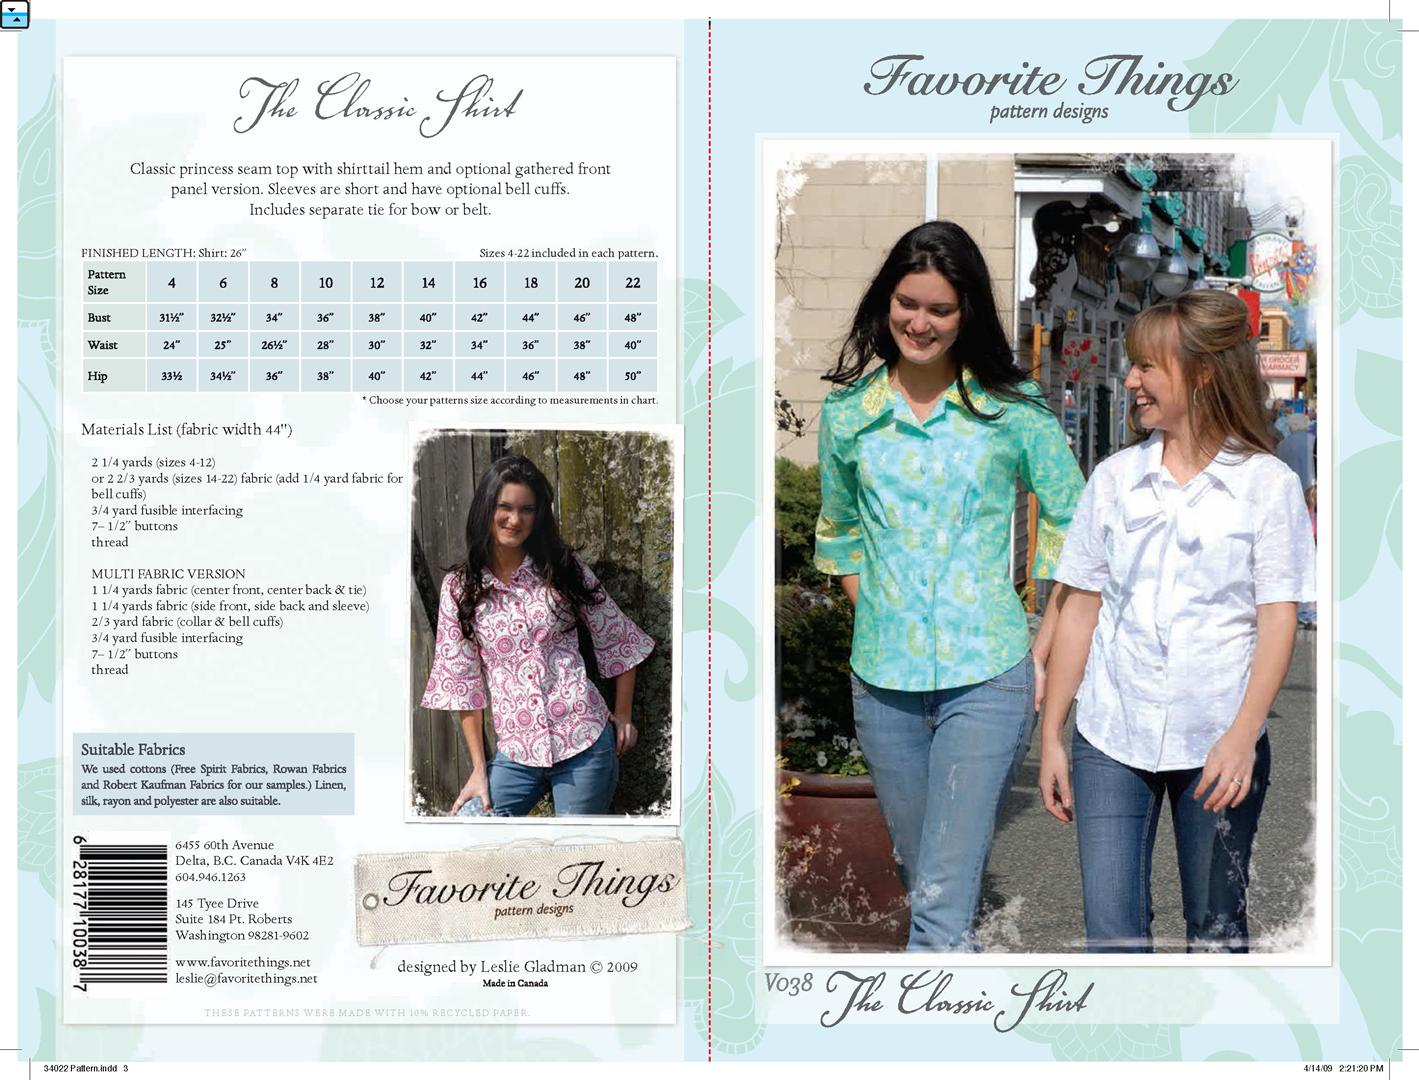 Favorite Things The Classic Shirt V038